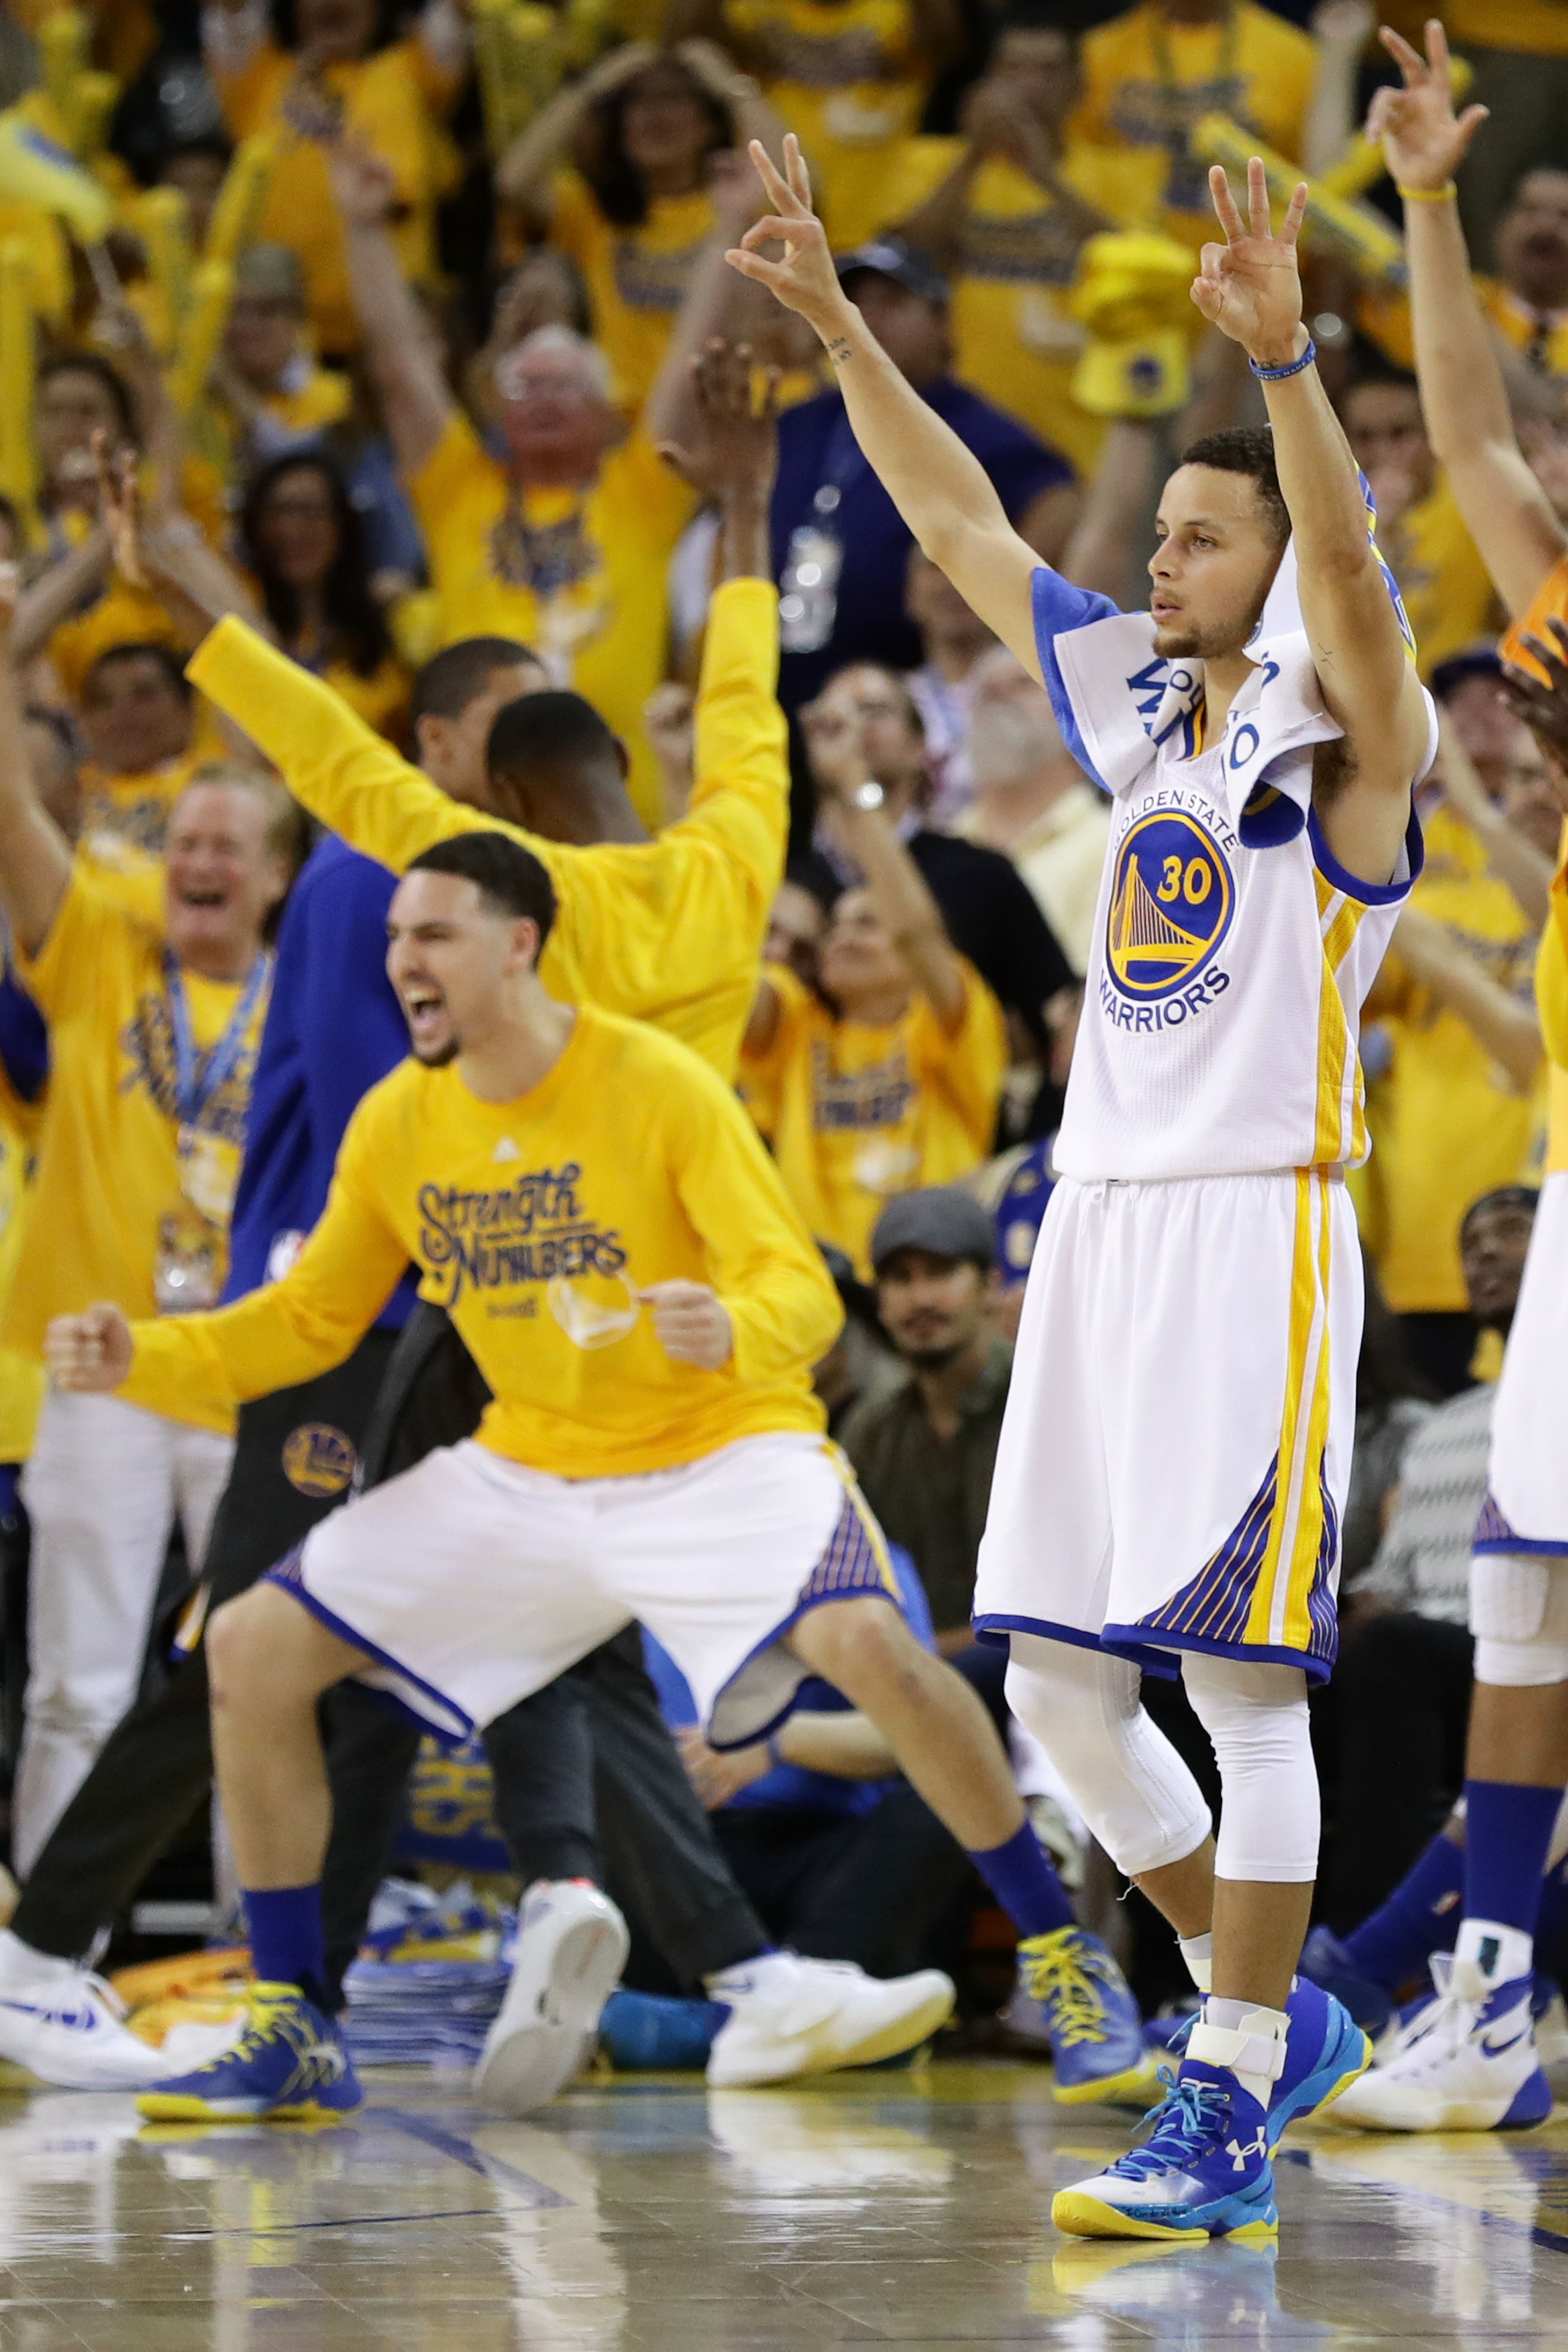 OAKLAND, CA - MAY 26:  Stephen Curry #30 of the Golden State Warriors reacts to a score against the Oklahoma City Thunder during Game Five of the Western Conference Finals during the 2016 NBA Playoffs at ORACLE Arena on May 26, 2016 in Oakland, California